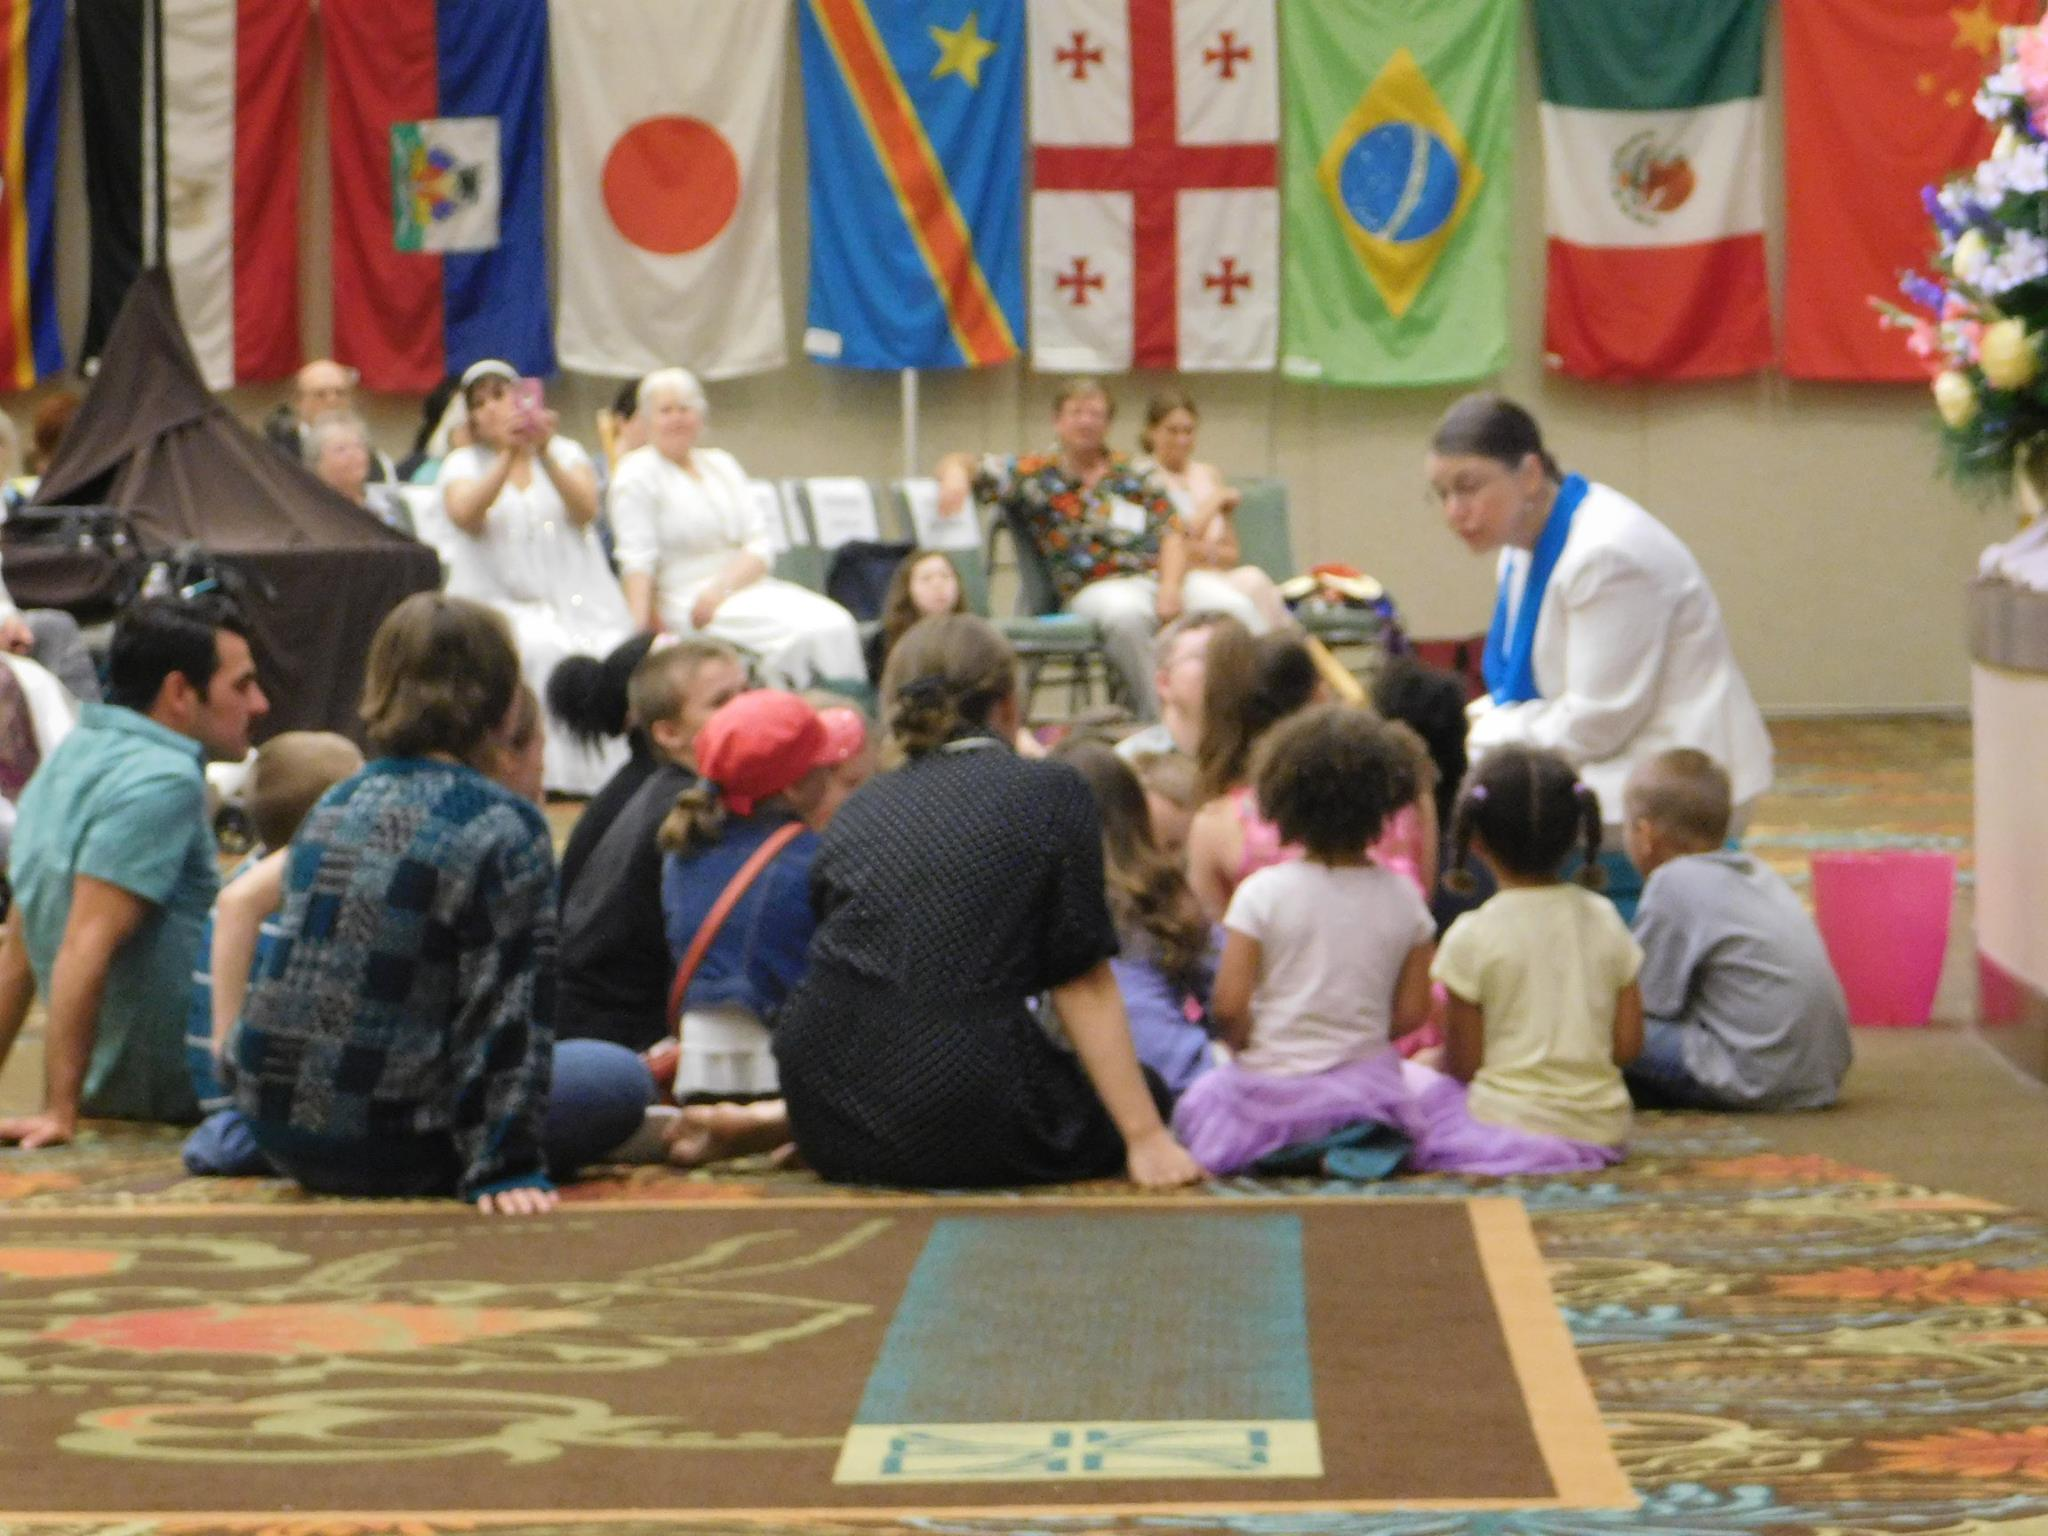 Sharon teaching the children at the World Convention